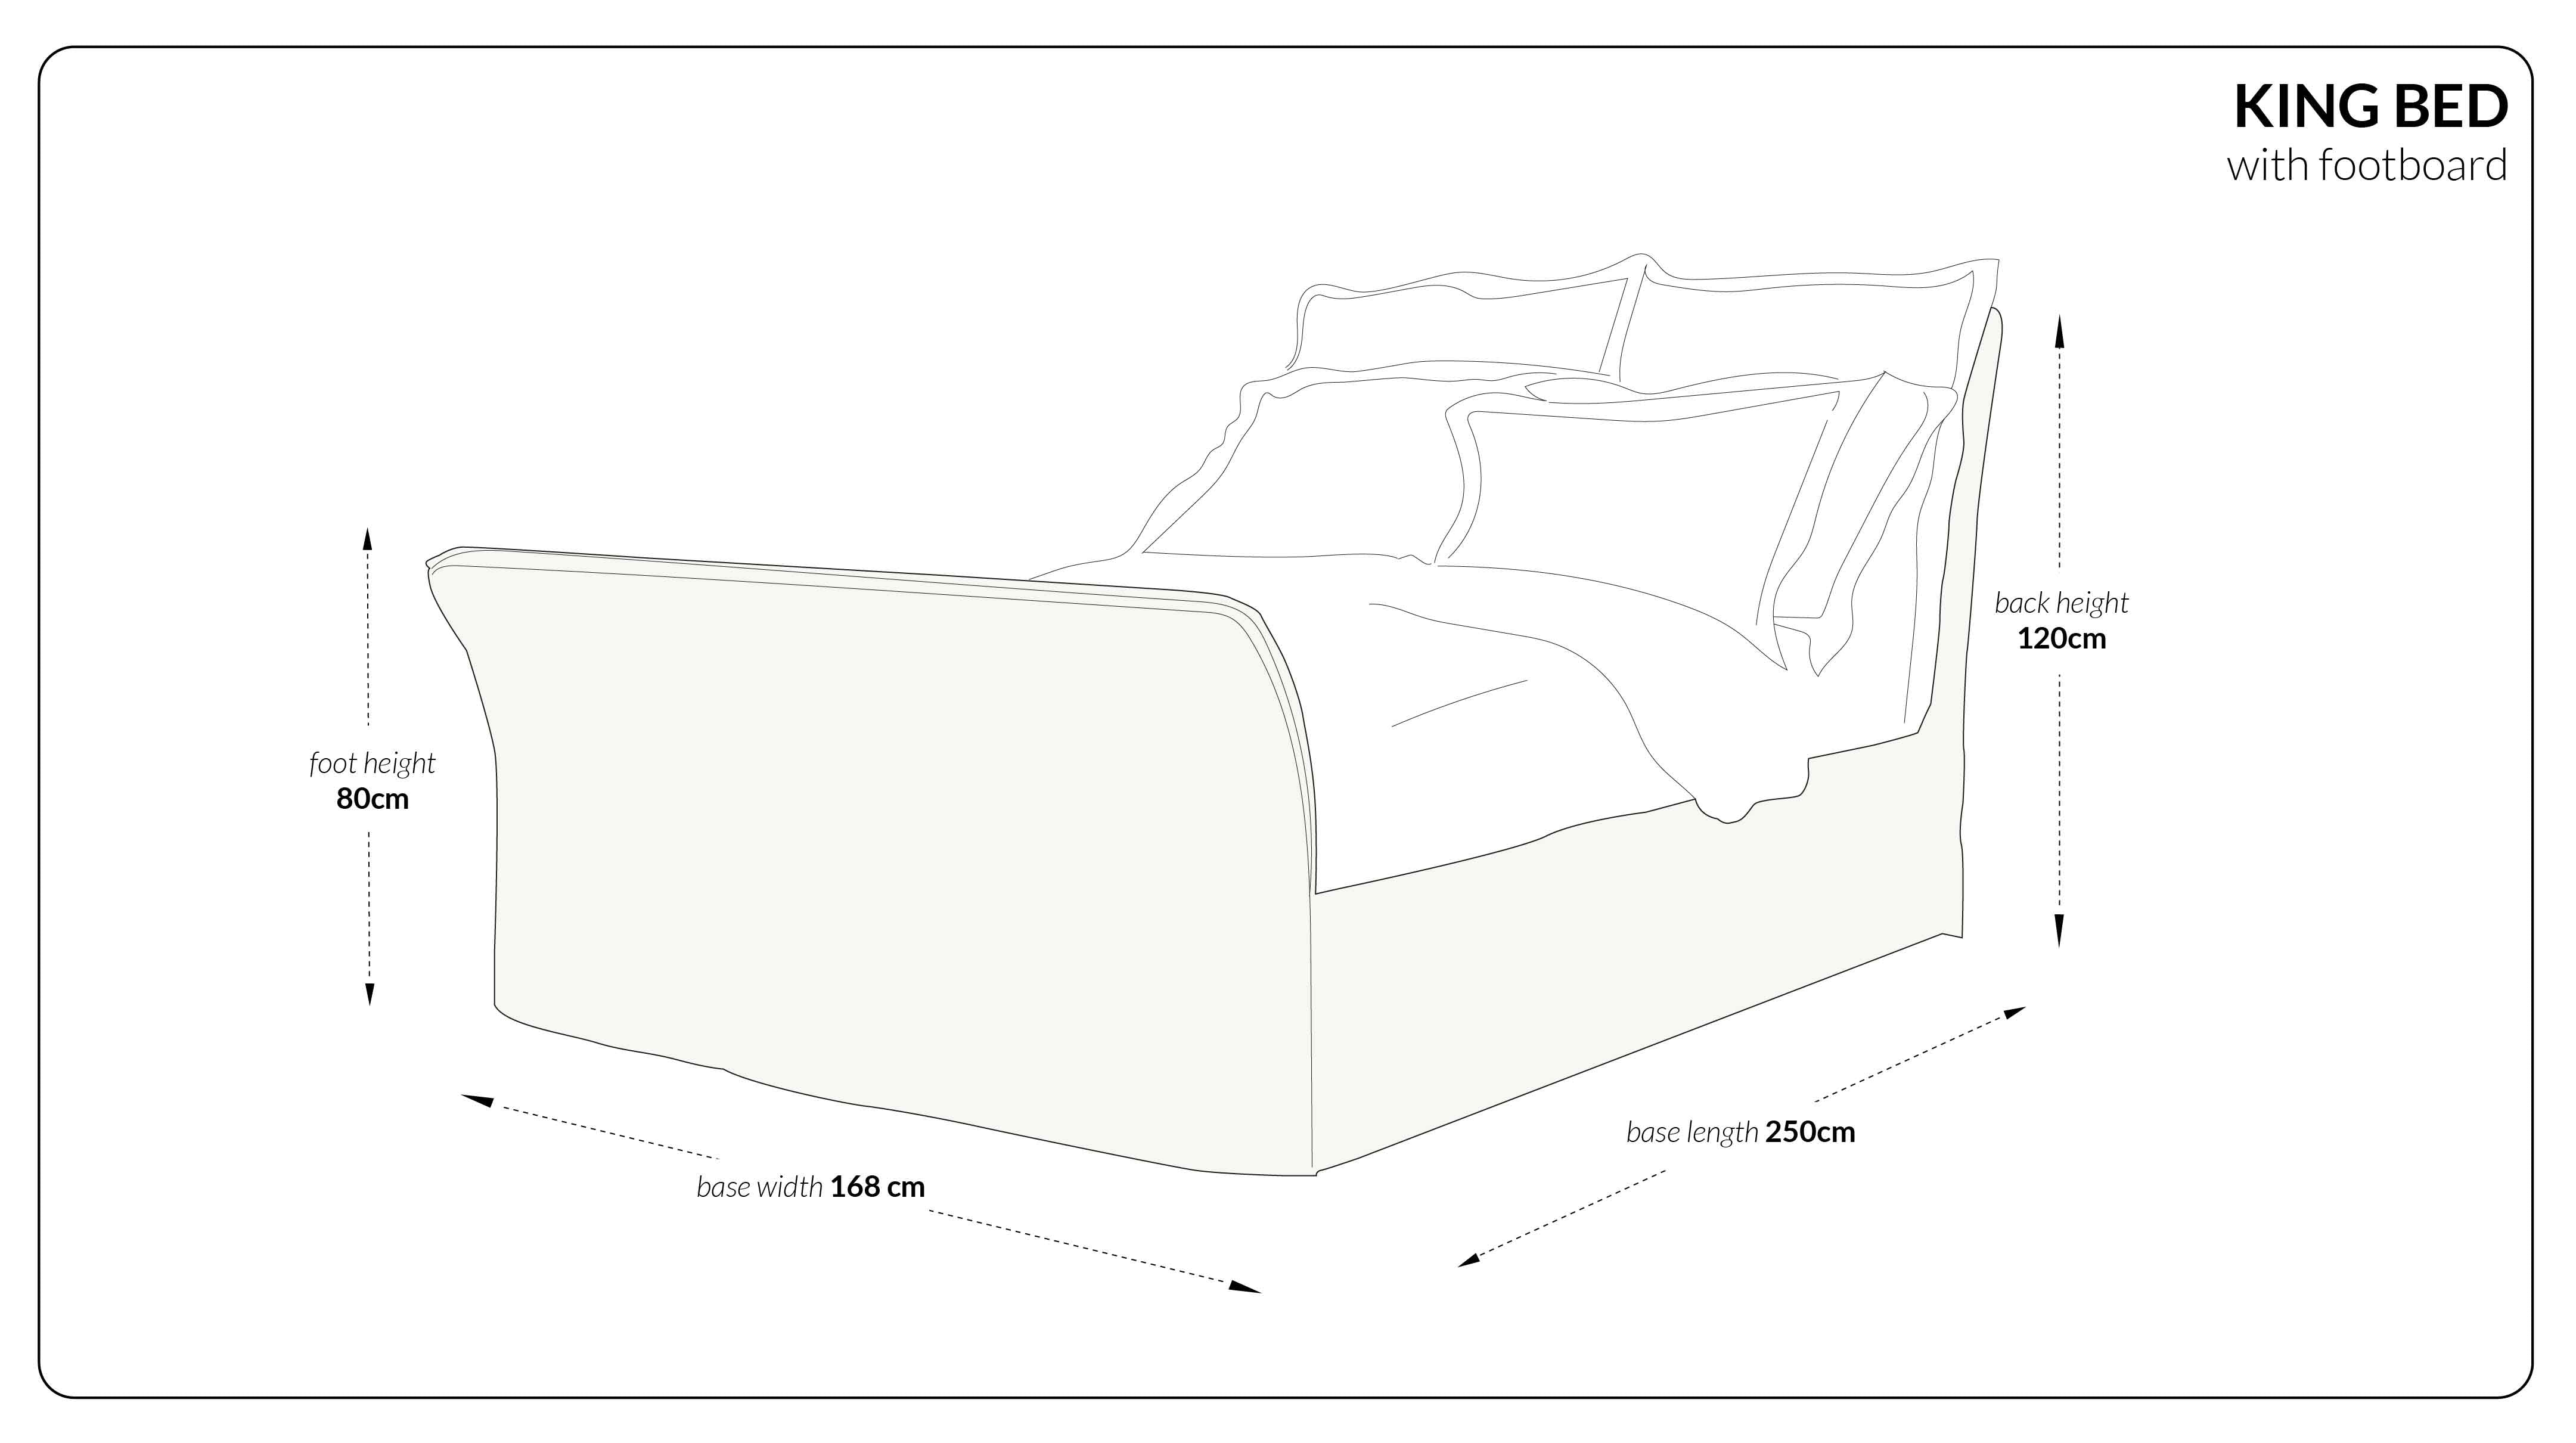 King Bed with footboard